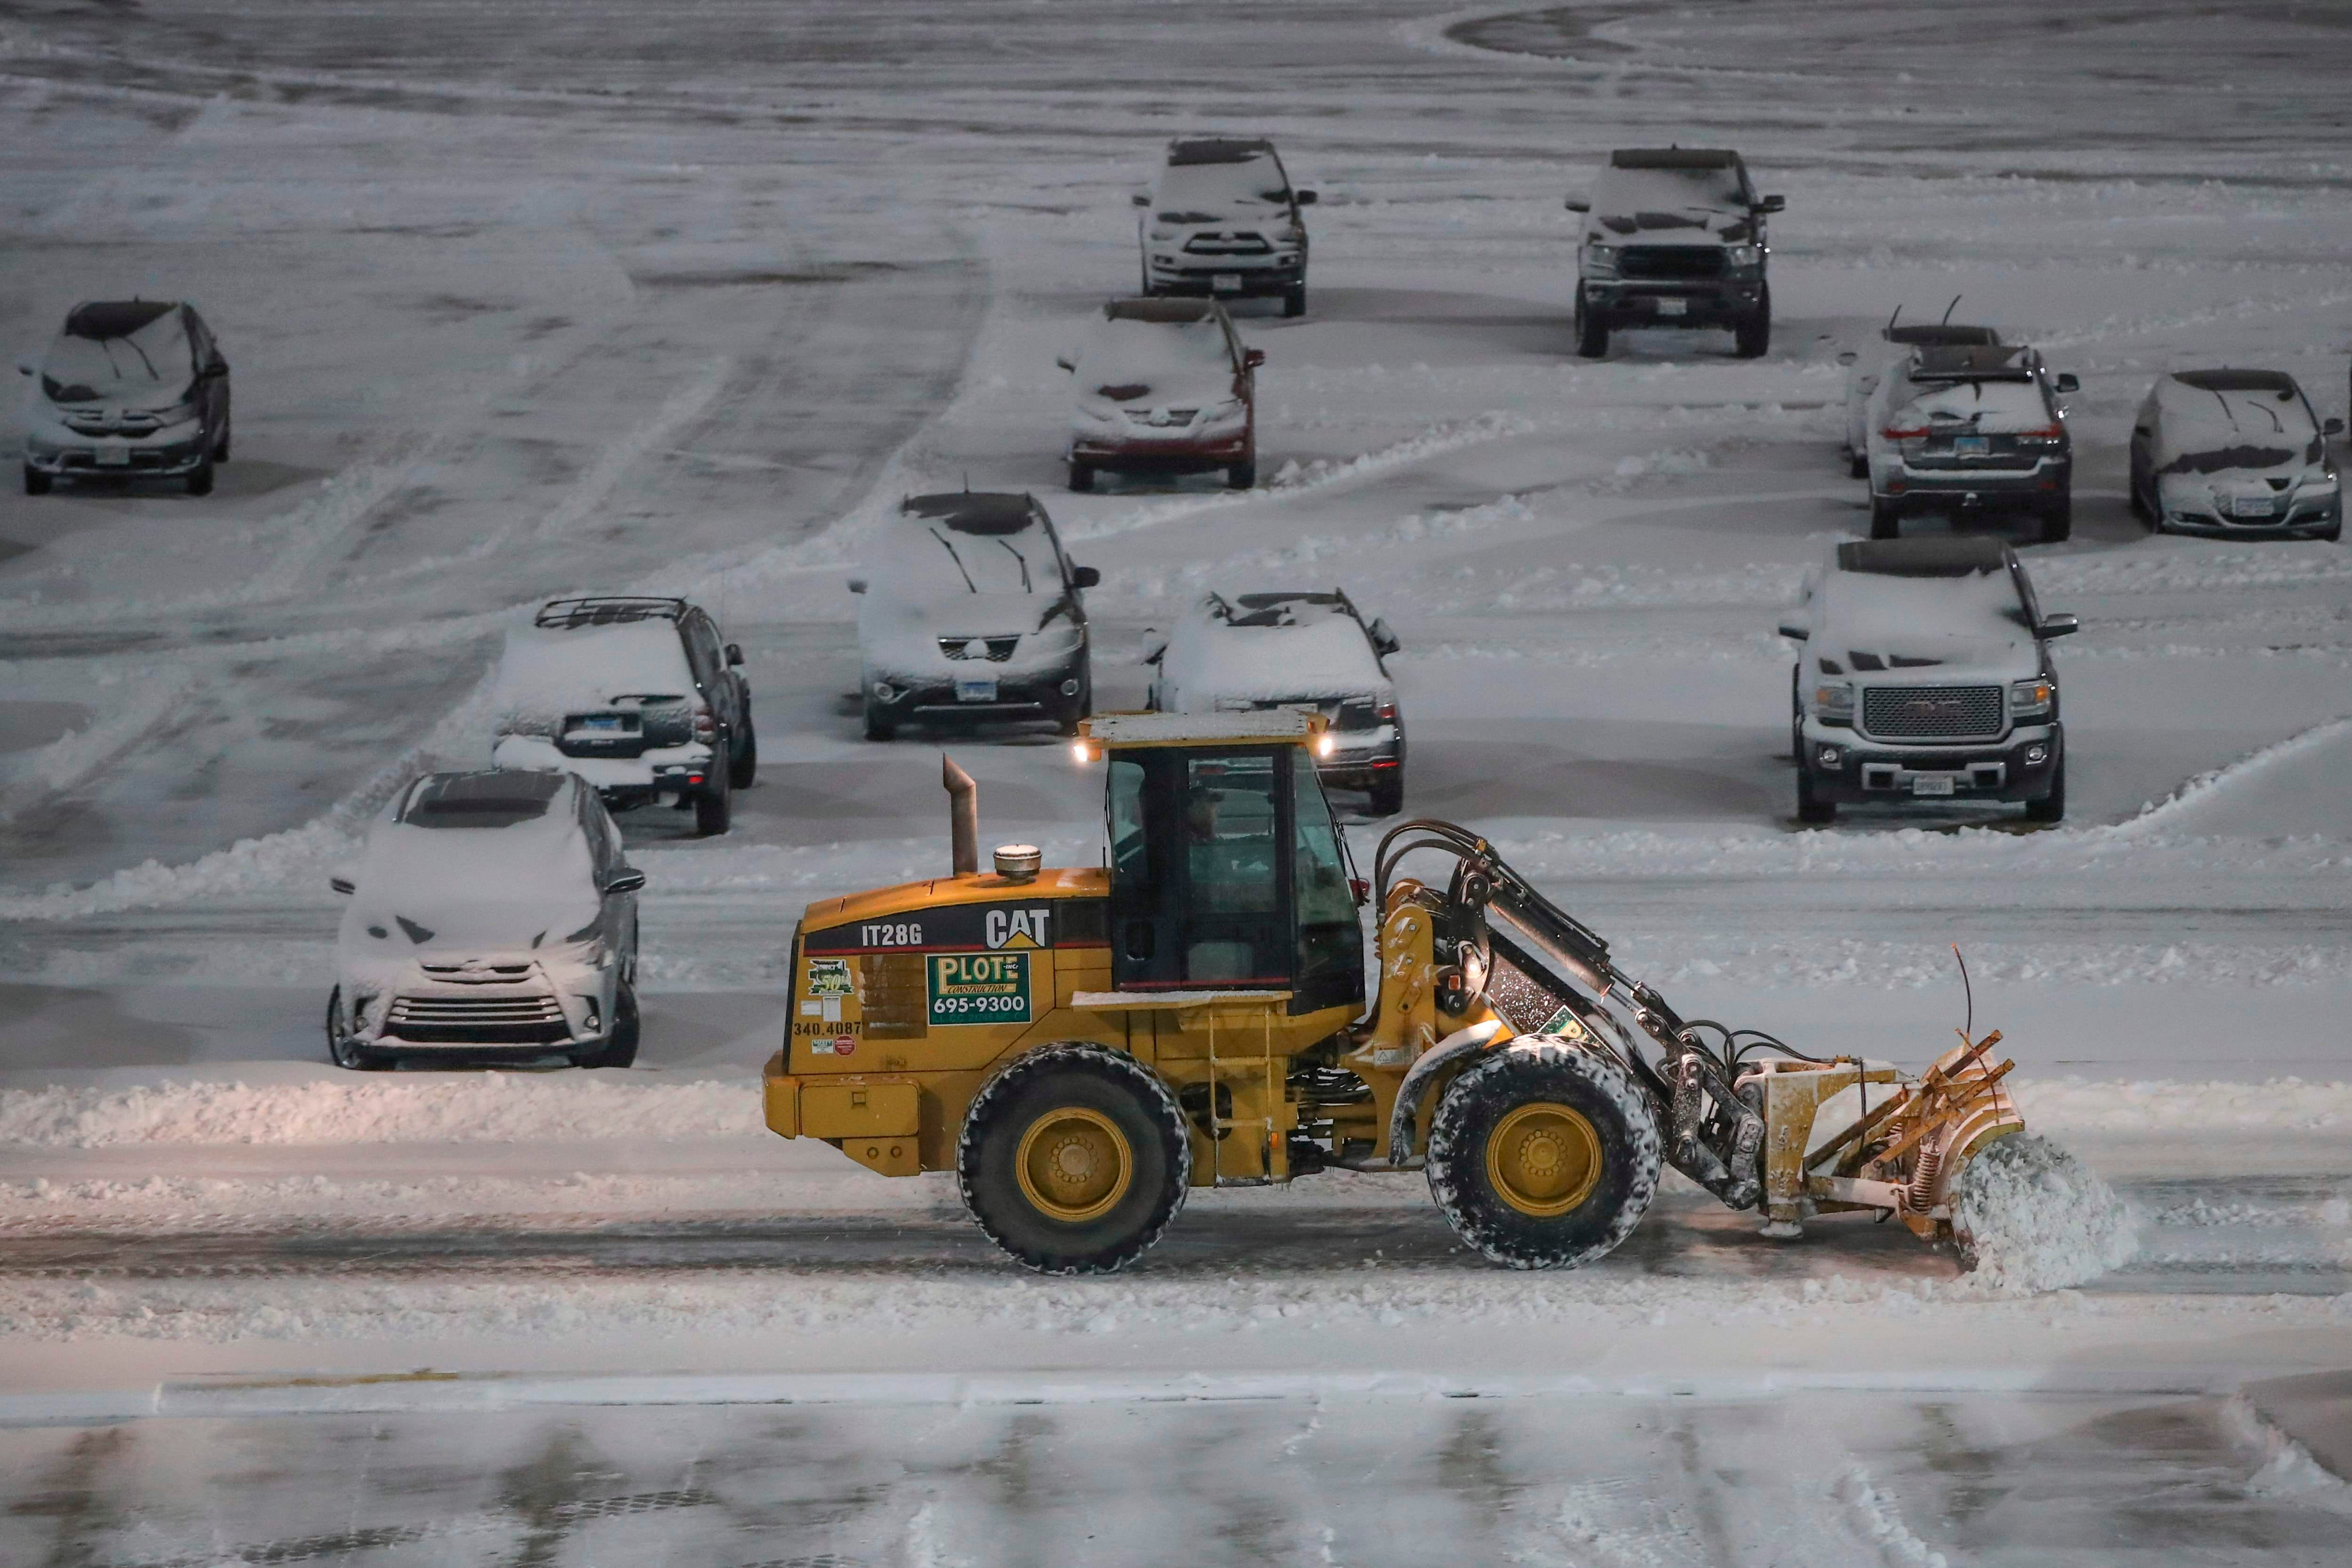 Airlines issue travel waivers as winter storms drops 'historic' snow in parts of Midwest